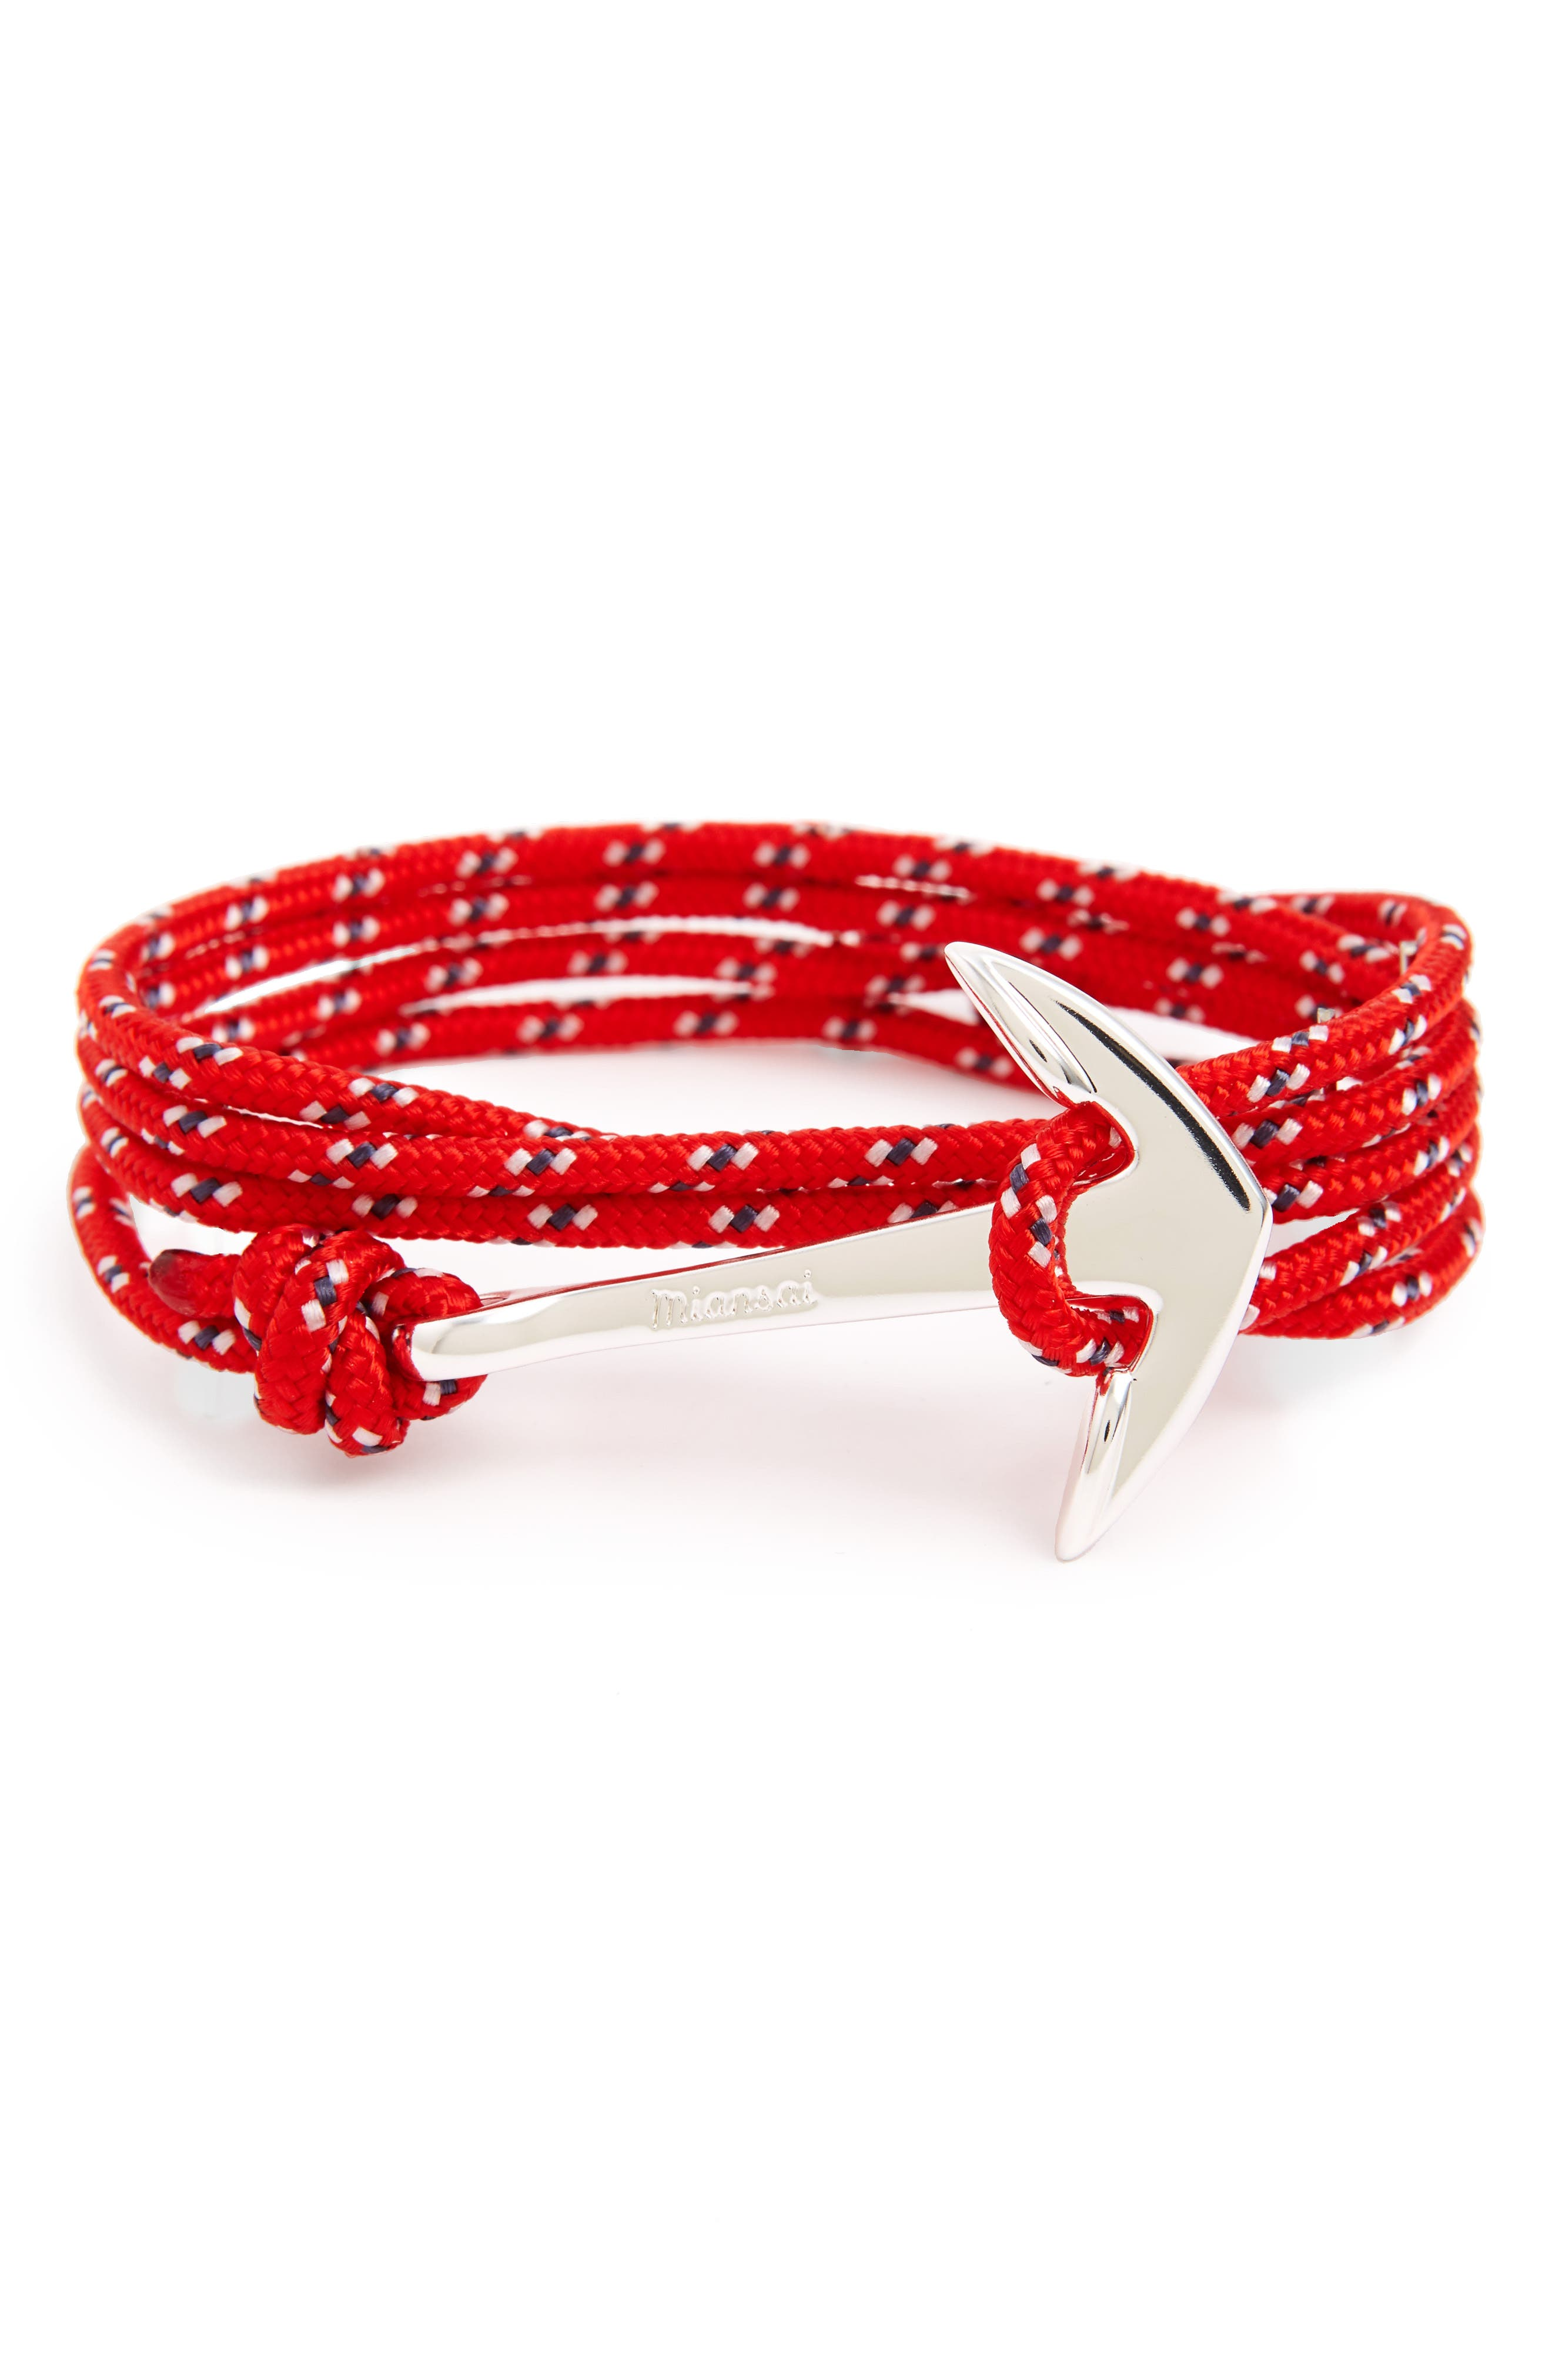 Silver Anchor Rope Wrap Bracelet,                             Main thumbnail 1, color,                             Crimson